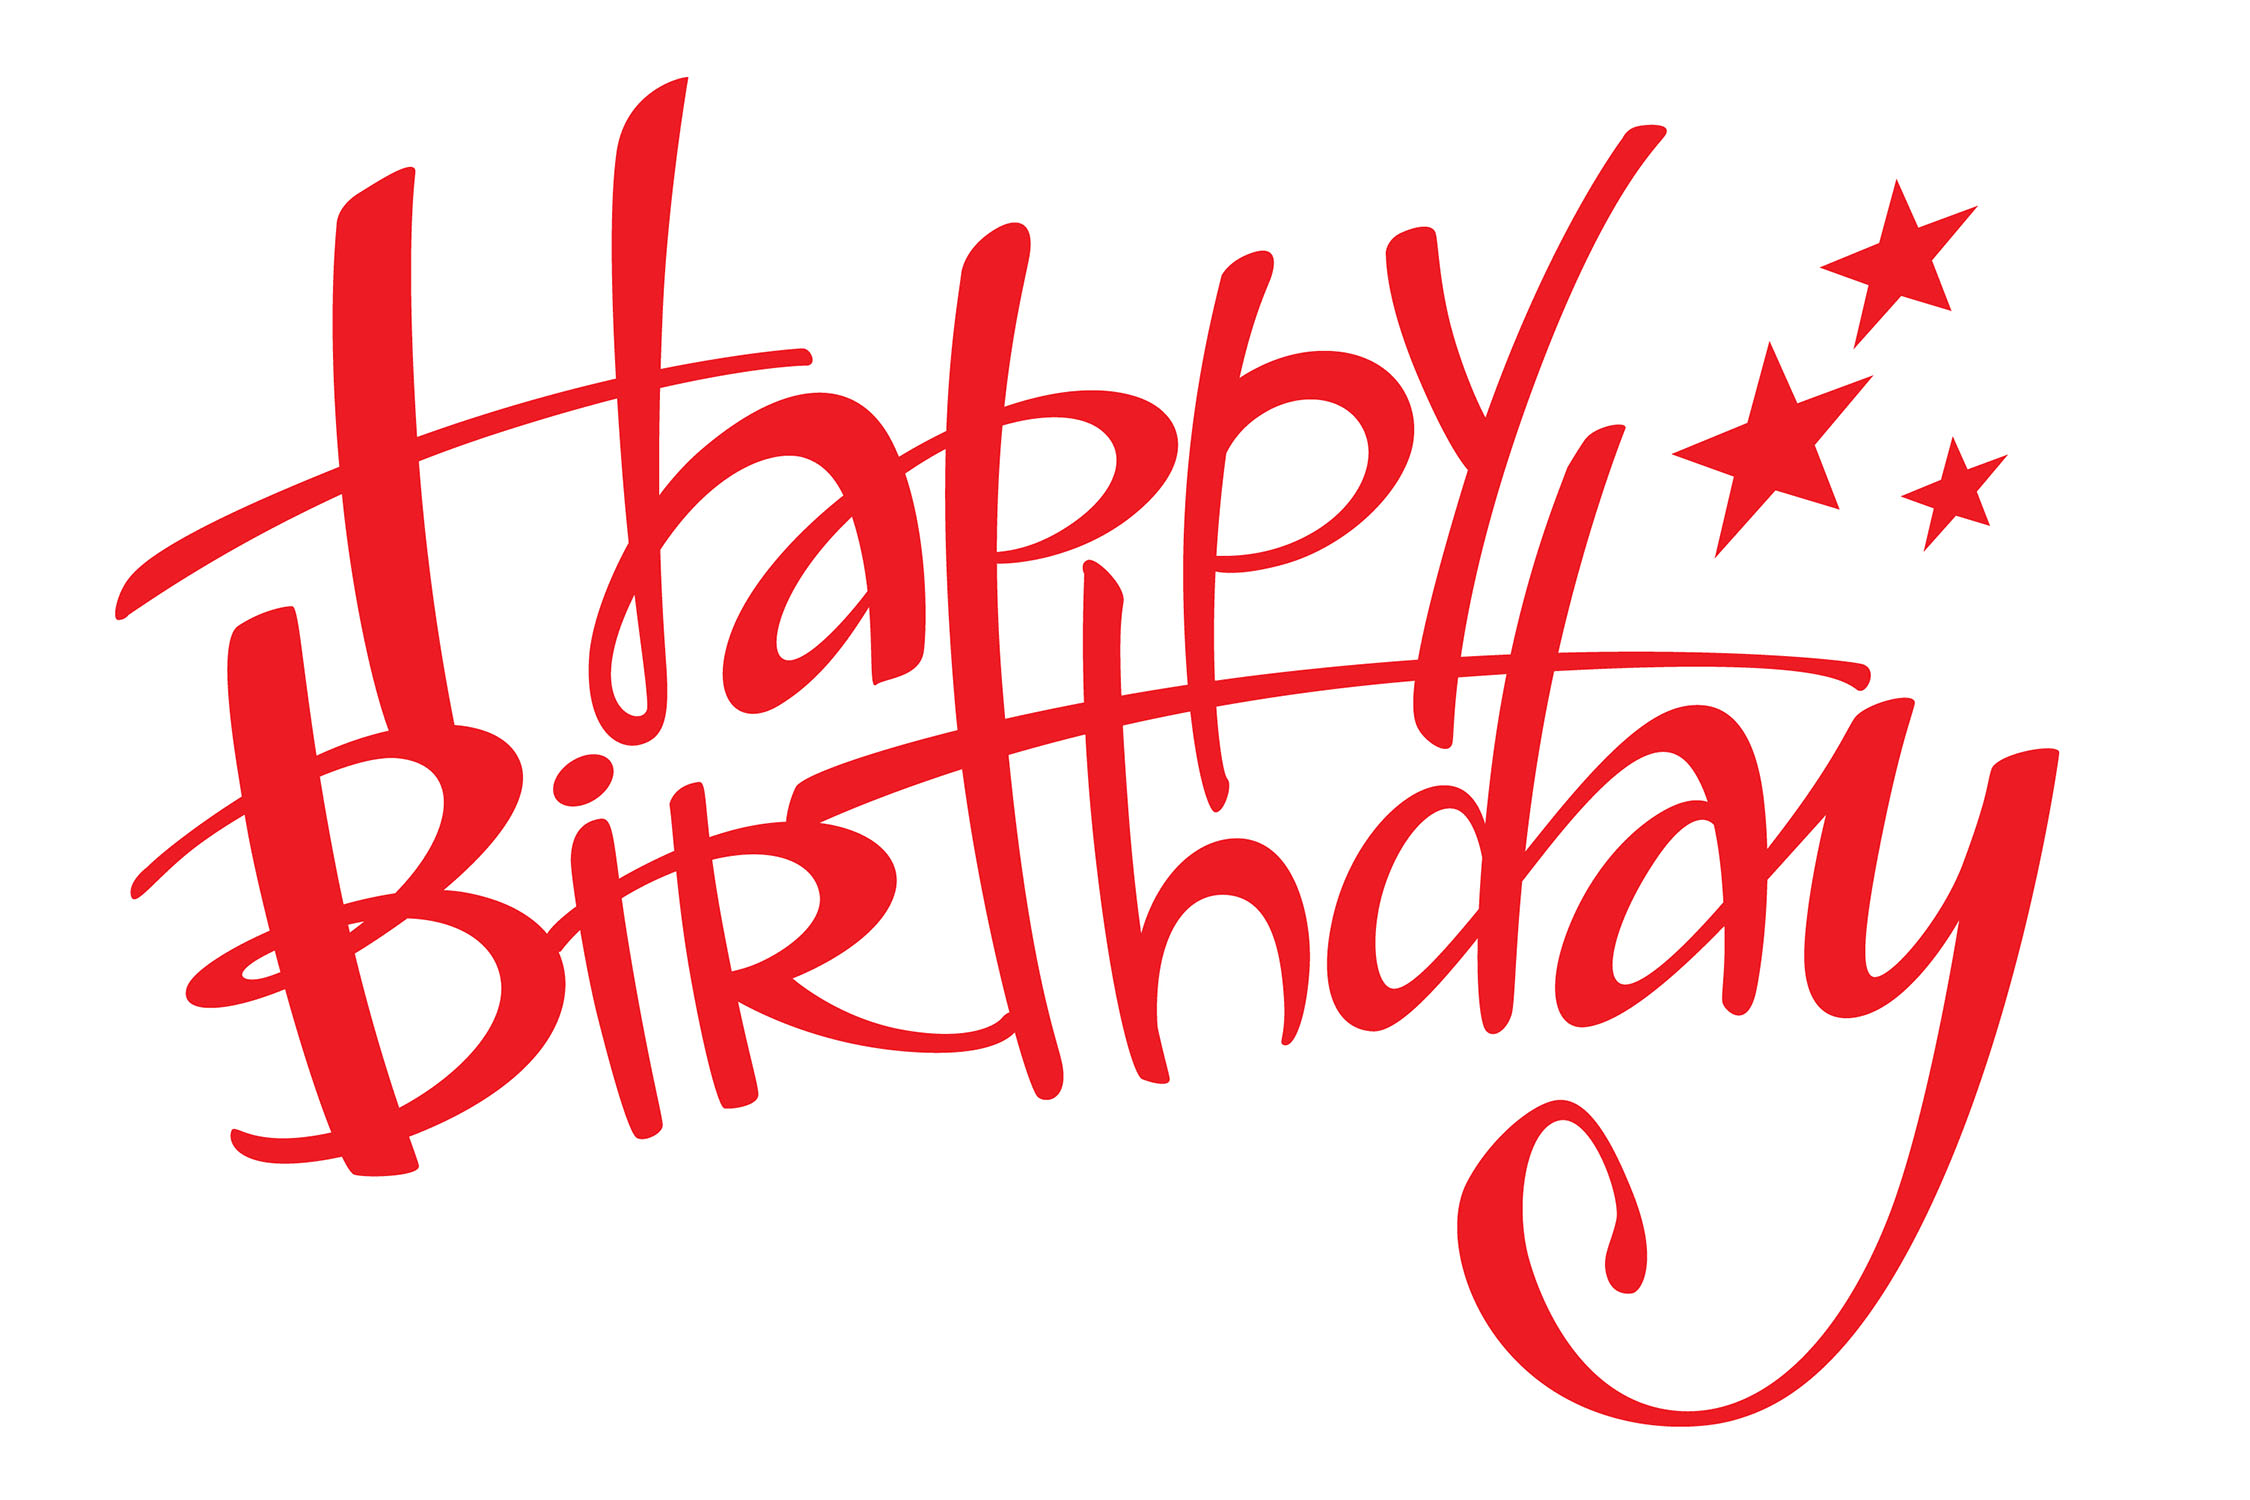 13 Happy Birthday Text Graphics Images